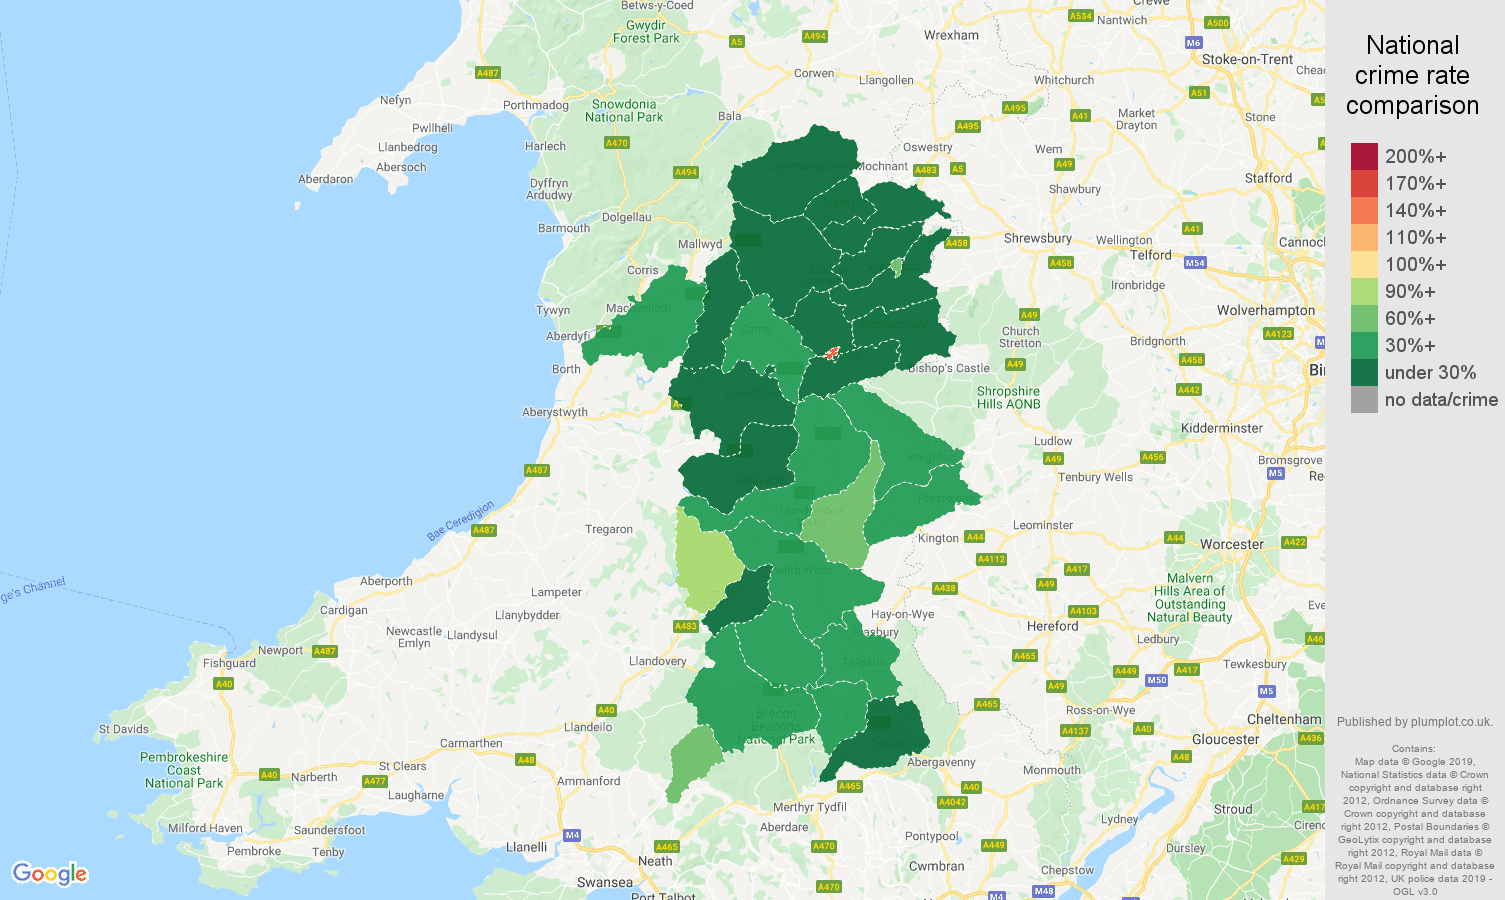 Powys public order crime rate comparison map